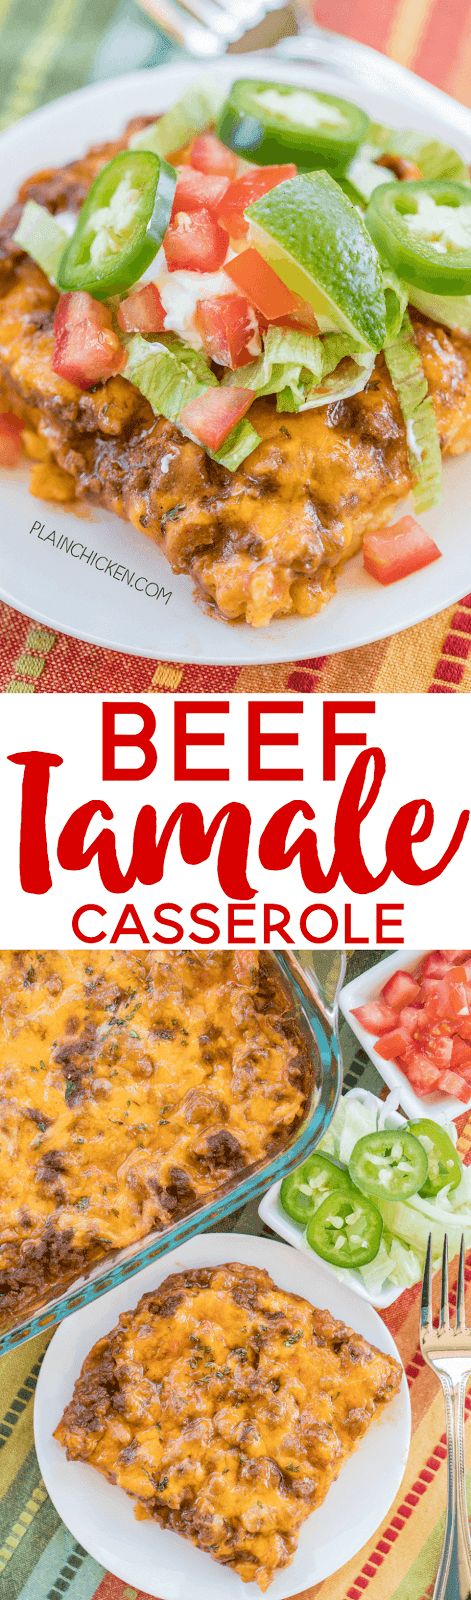 Beef Tamale Casserole - sweet cornbread crust topped with seasoned beef, enchilada sauce and cheese. A real crowd pleaser! Everyone always cleans their plate!! Such an easy Mexican casserole recipe!!! Jiffy Mix, eggs, milk, creamed corn, hamburger meat, taco seasoning, enchilada sauce and cheddar cheese. Make it tonight! You won't be disappointed!